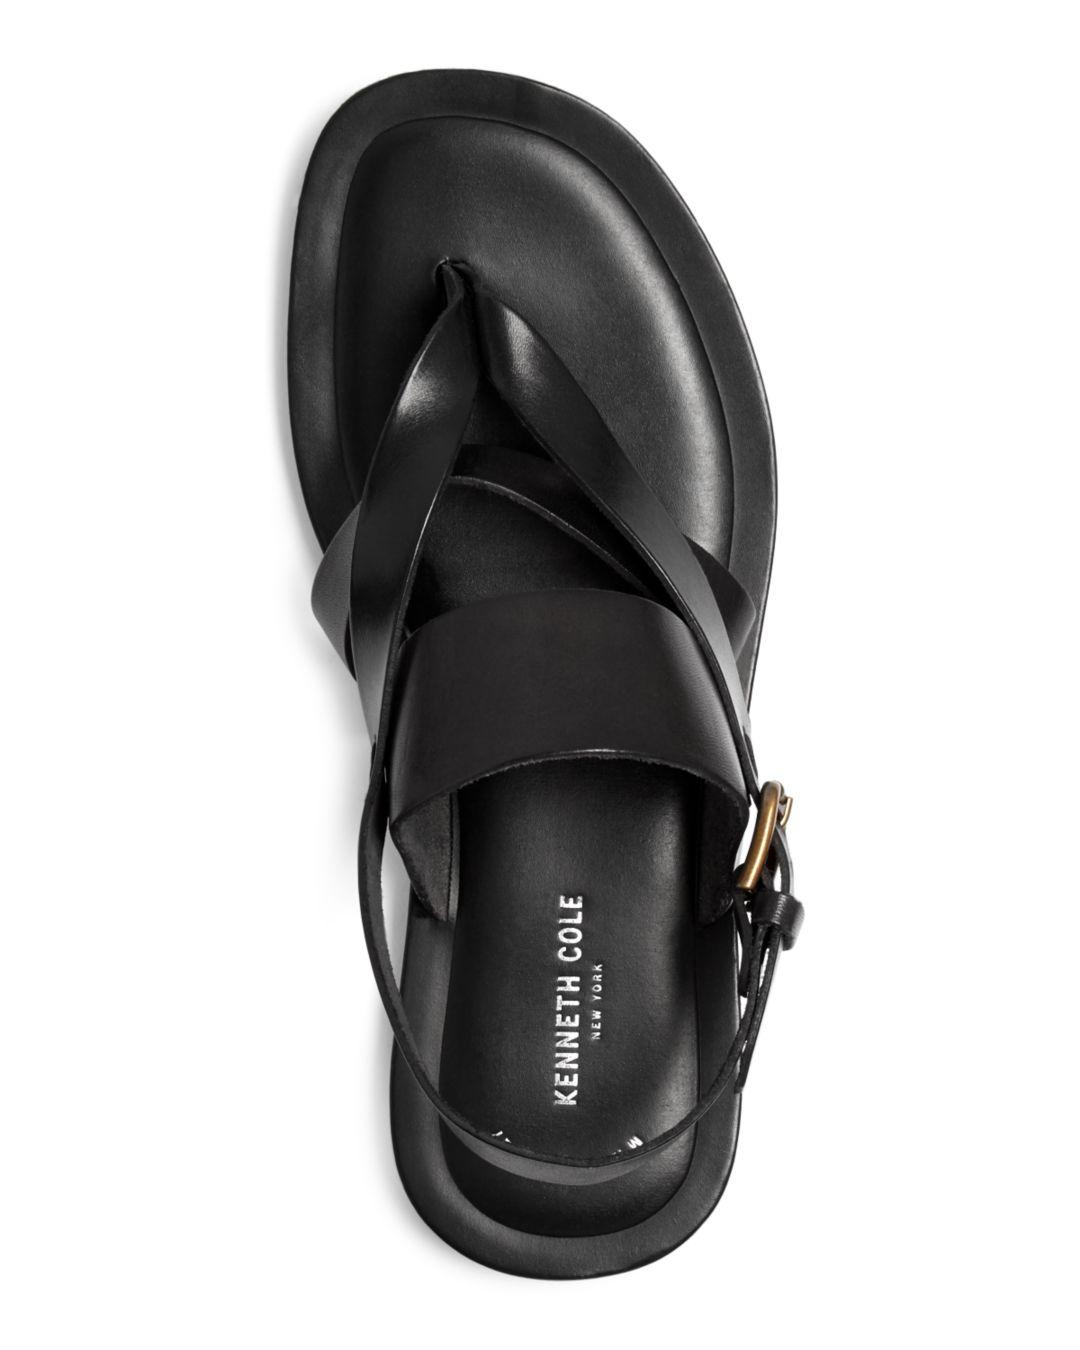 3cd88e961d57 Lyst - Kenneth Cole Men s Reel-ist Leather Thong Sandals in Black for Men